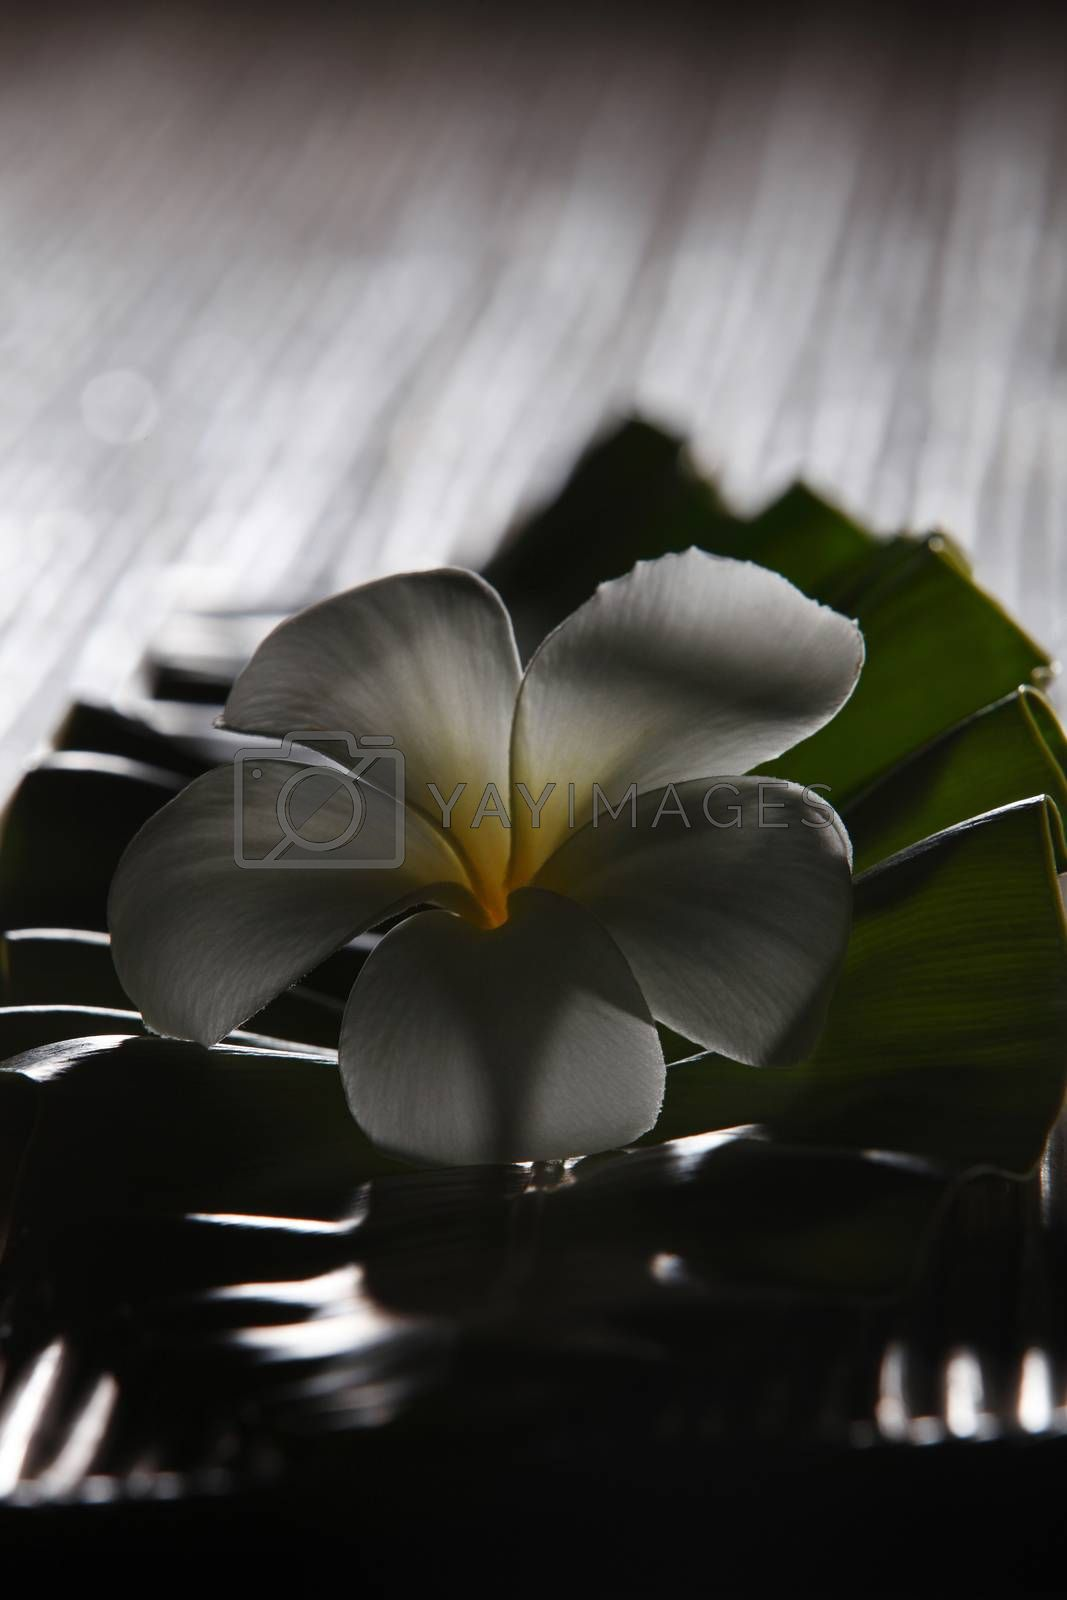 white frangipani rest on the green leaf